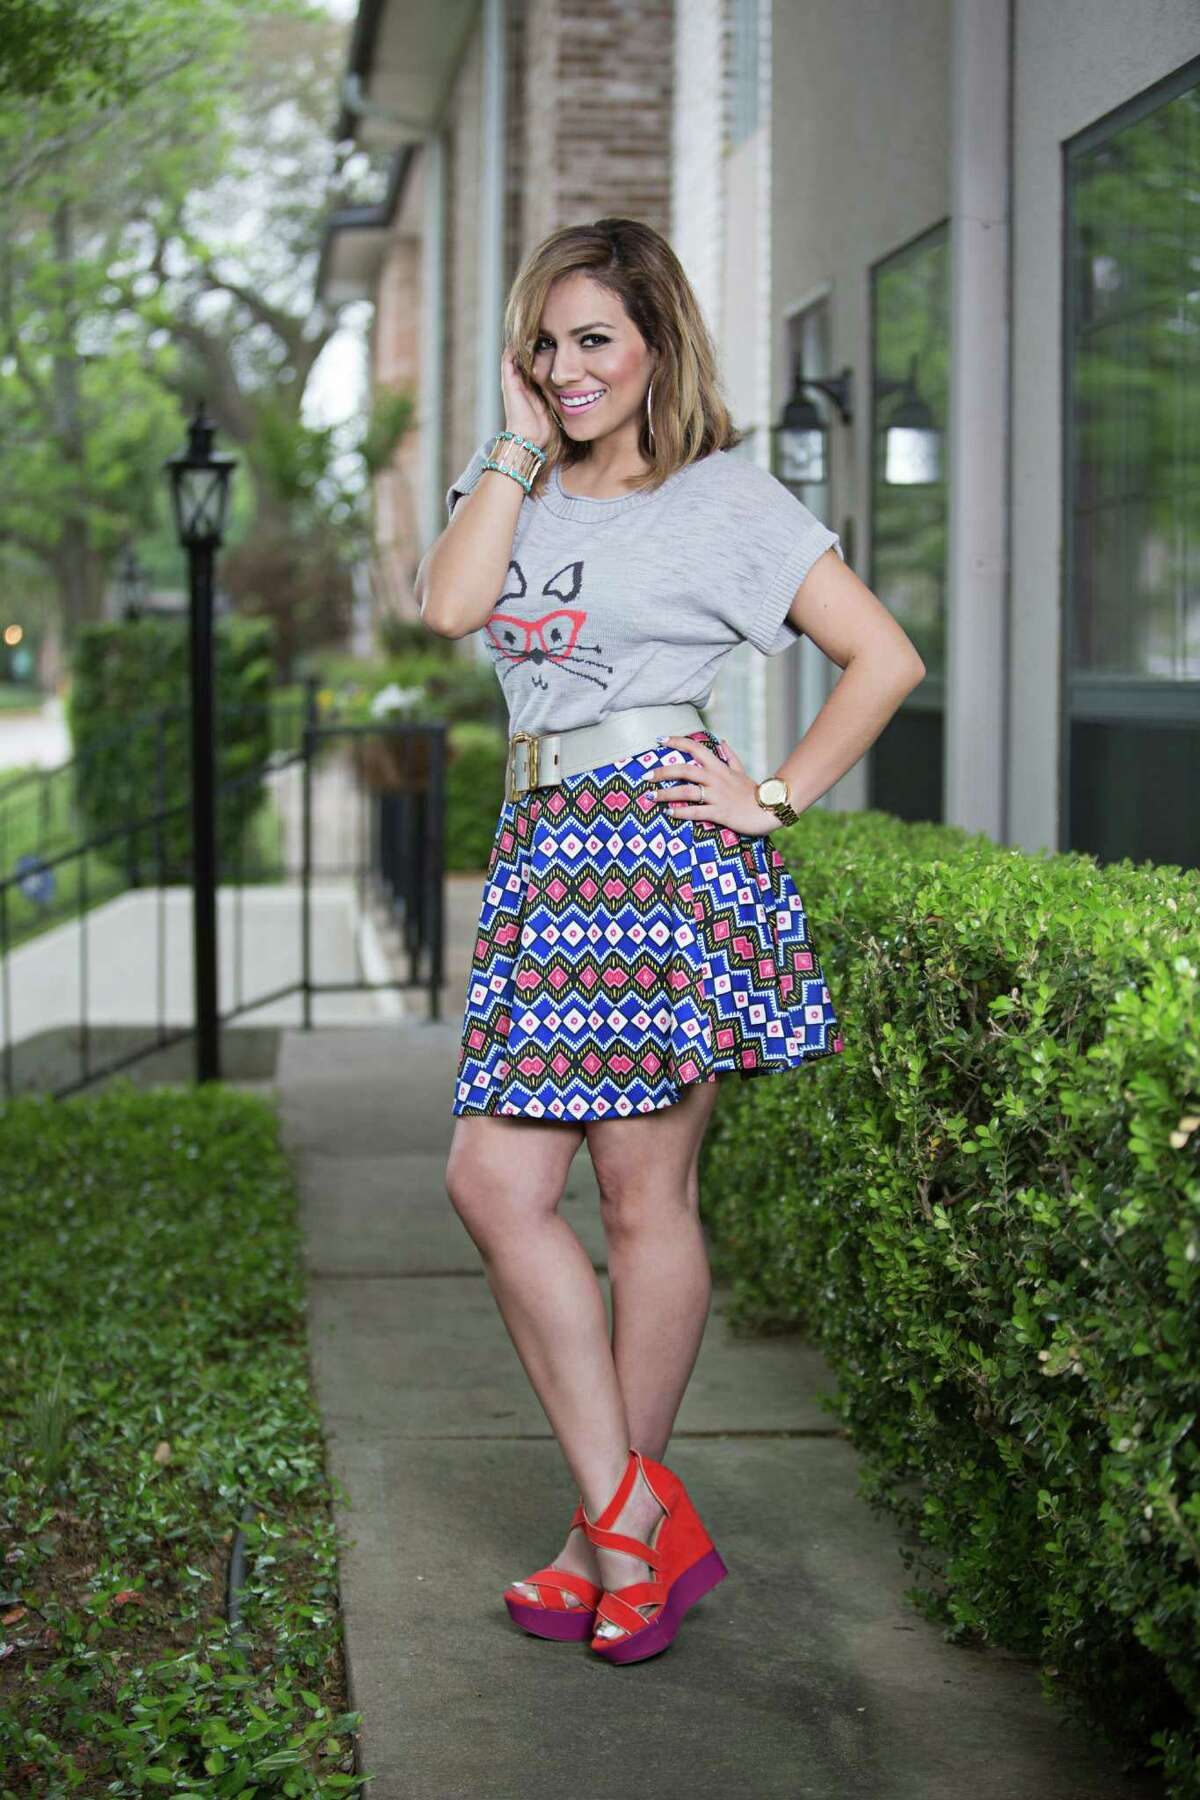 Yvonne Garza-Guidry started her Spoiled Latina style and fashion blog in 2008 and has since generated a large social-media presence with mor than 14,000 Instagram followers. She also was named a top blogger by Cosmopolitan Latiina.